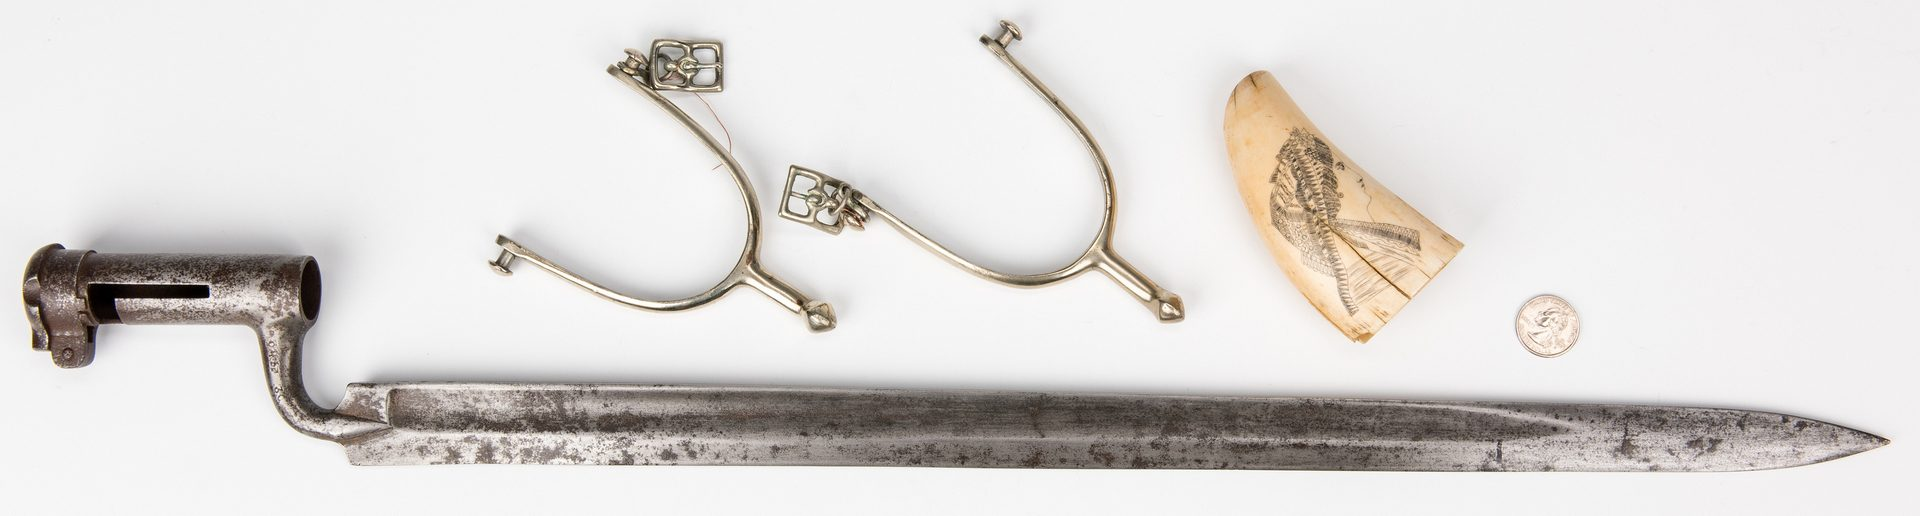 Lot 398: Scrimshaw, Bayonet, U.S. Model 1911 Cavalry Spurs,